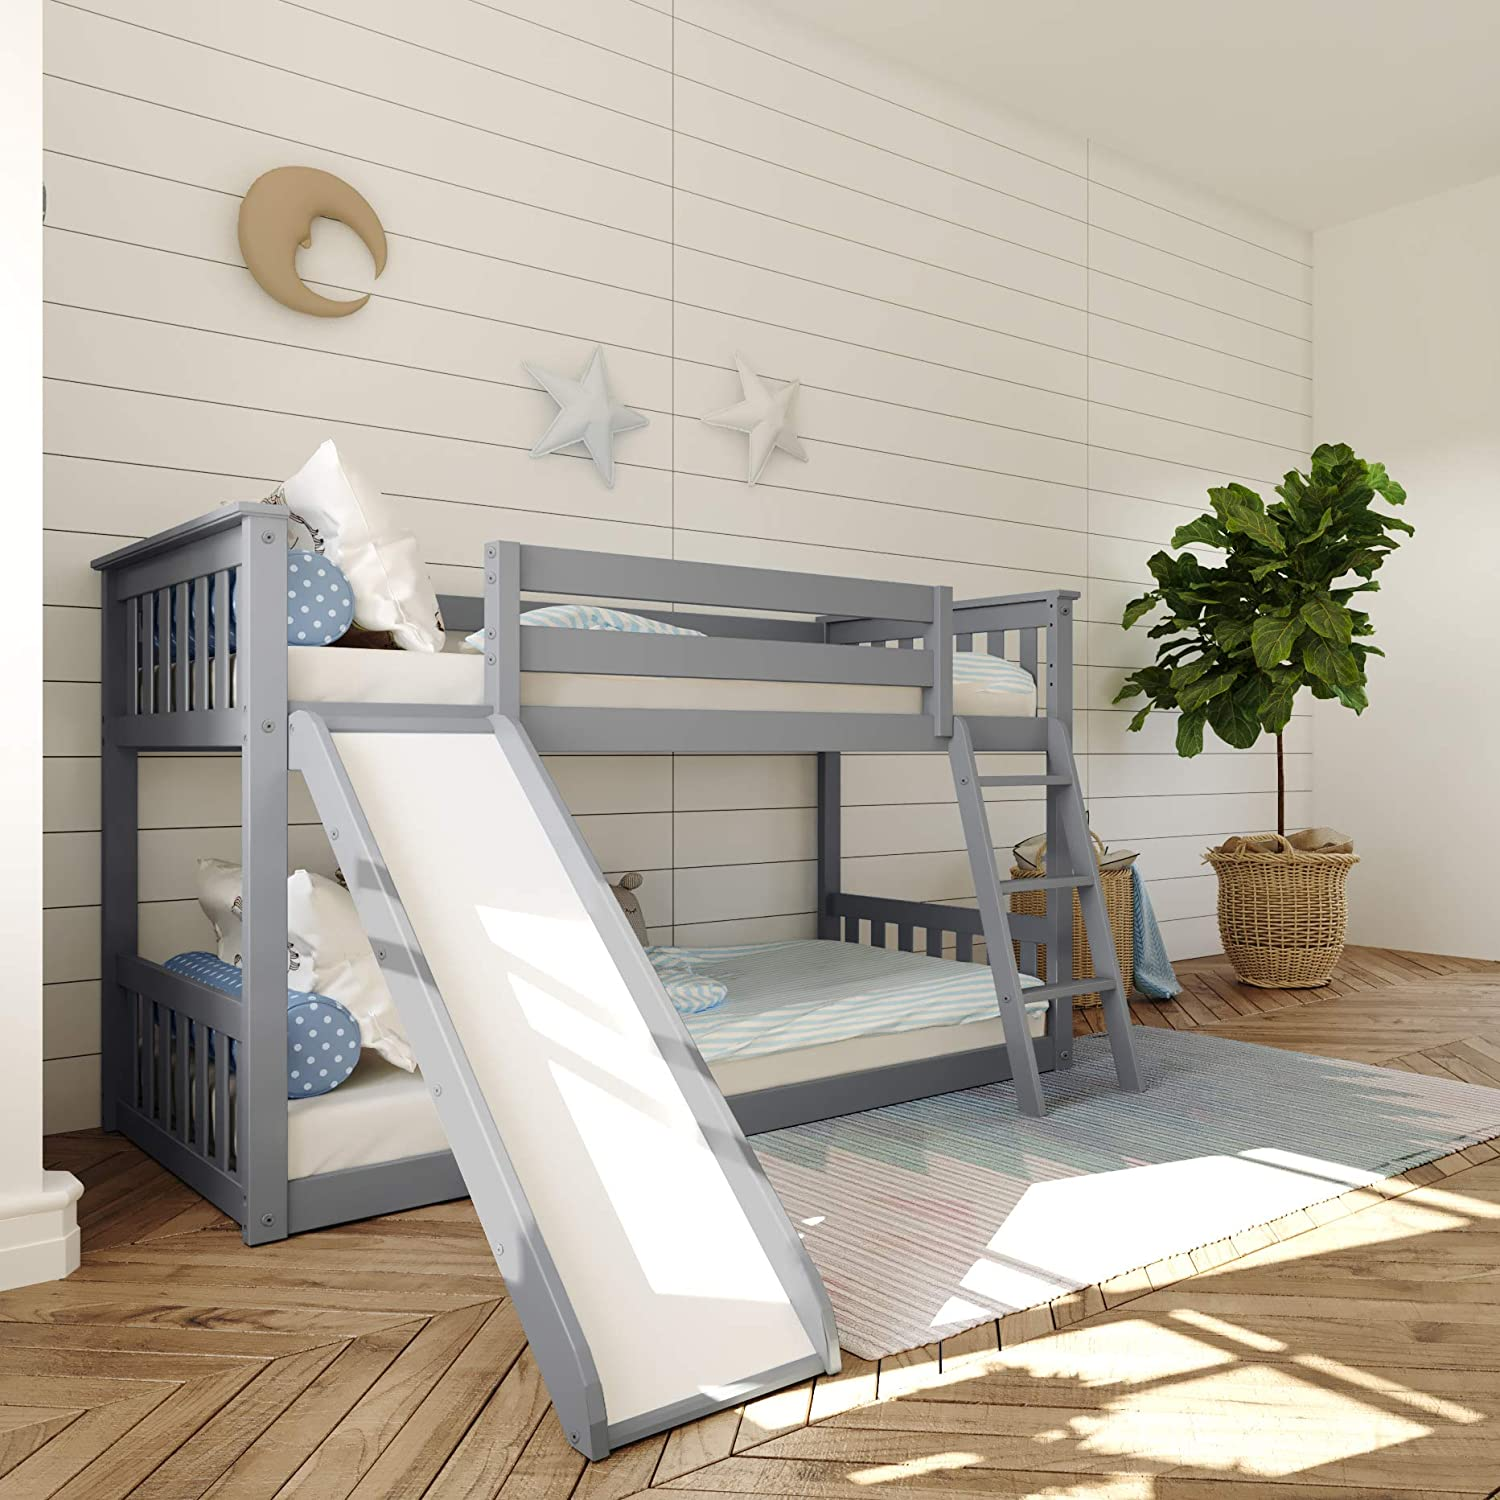 Max & Lily Twin Low Bunk Bed w/ Slide & Angle Ladder, Grey